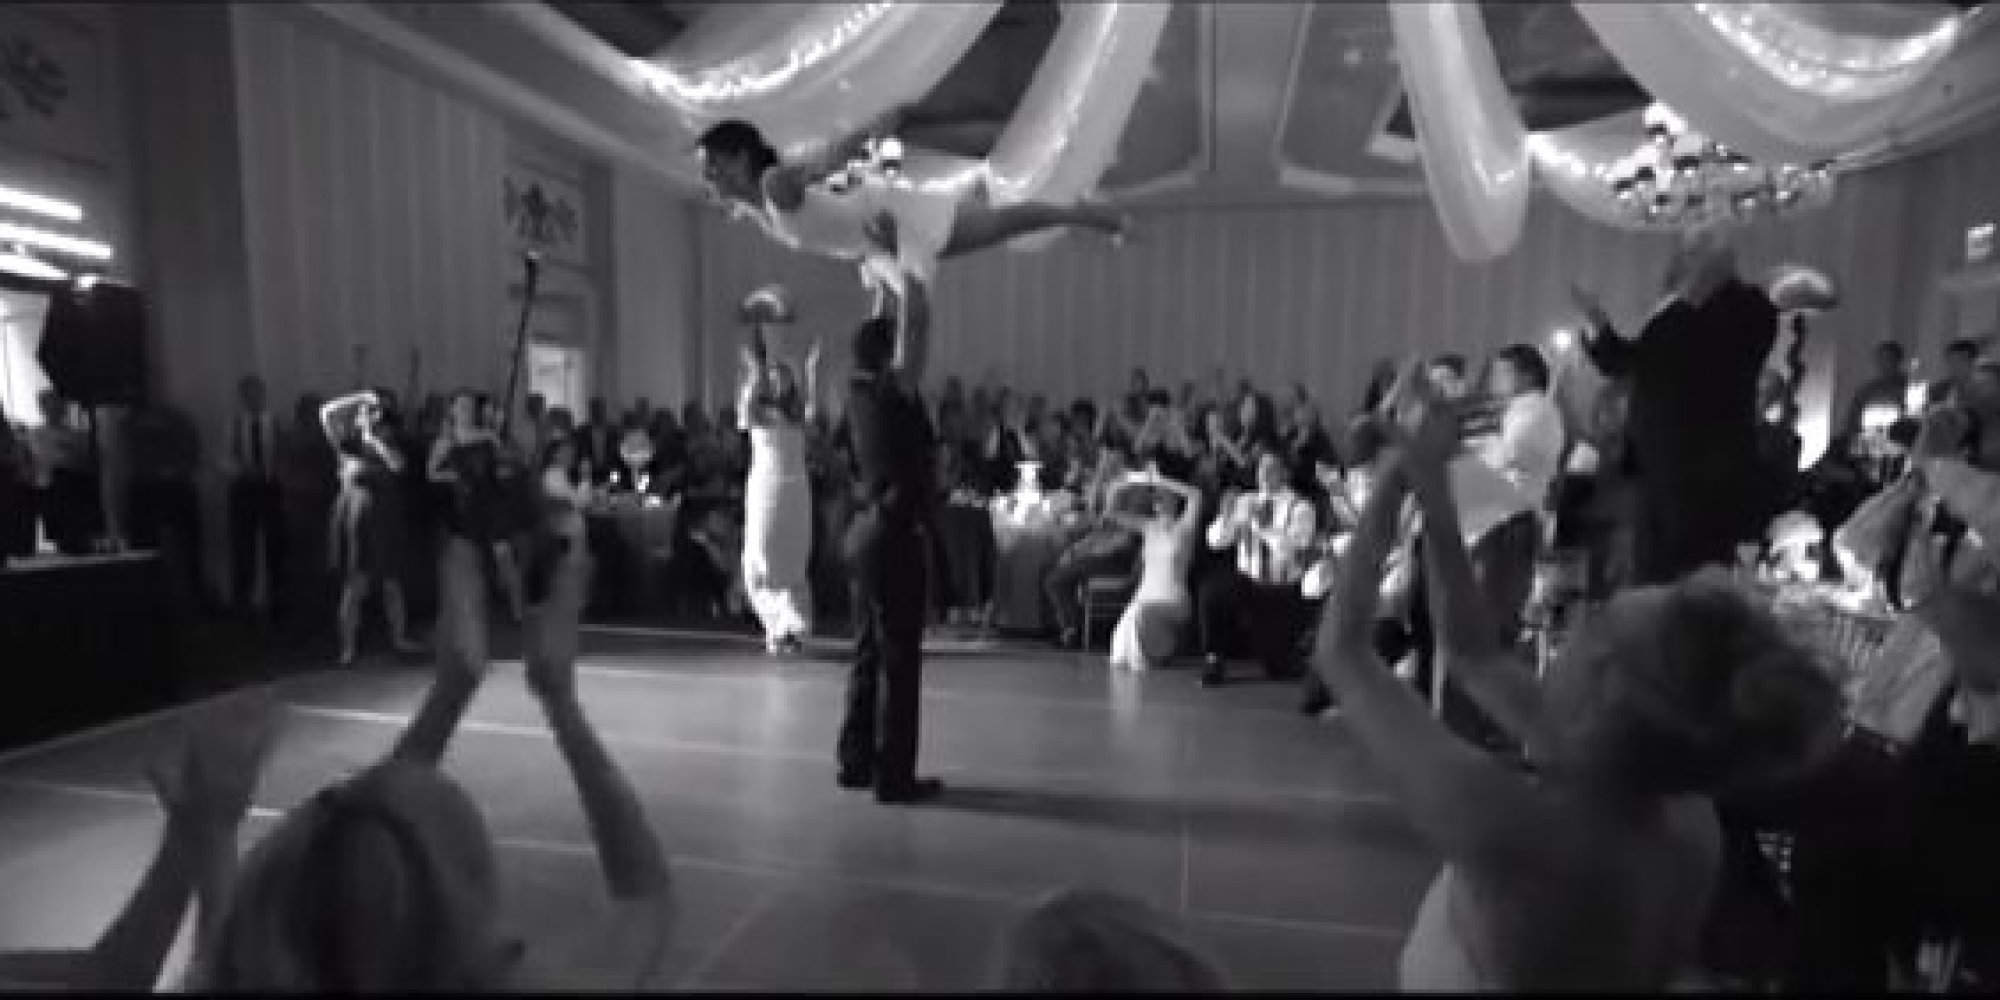 Couple Performs Dirty Dancing Scene At Wedding All Signs Point To Awesome Marriage Ahead